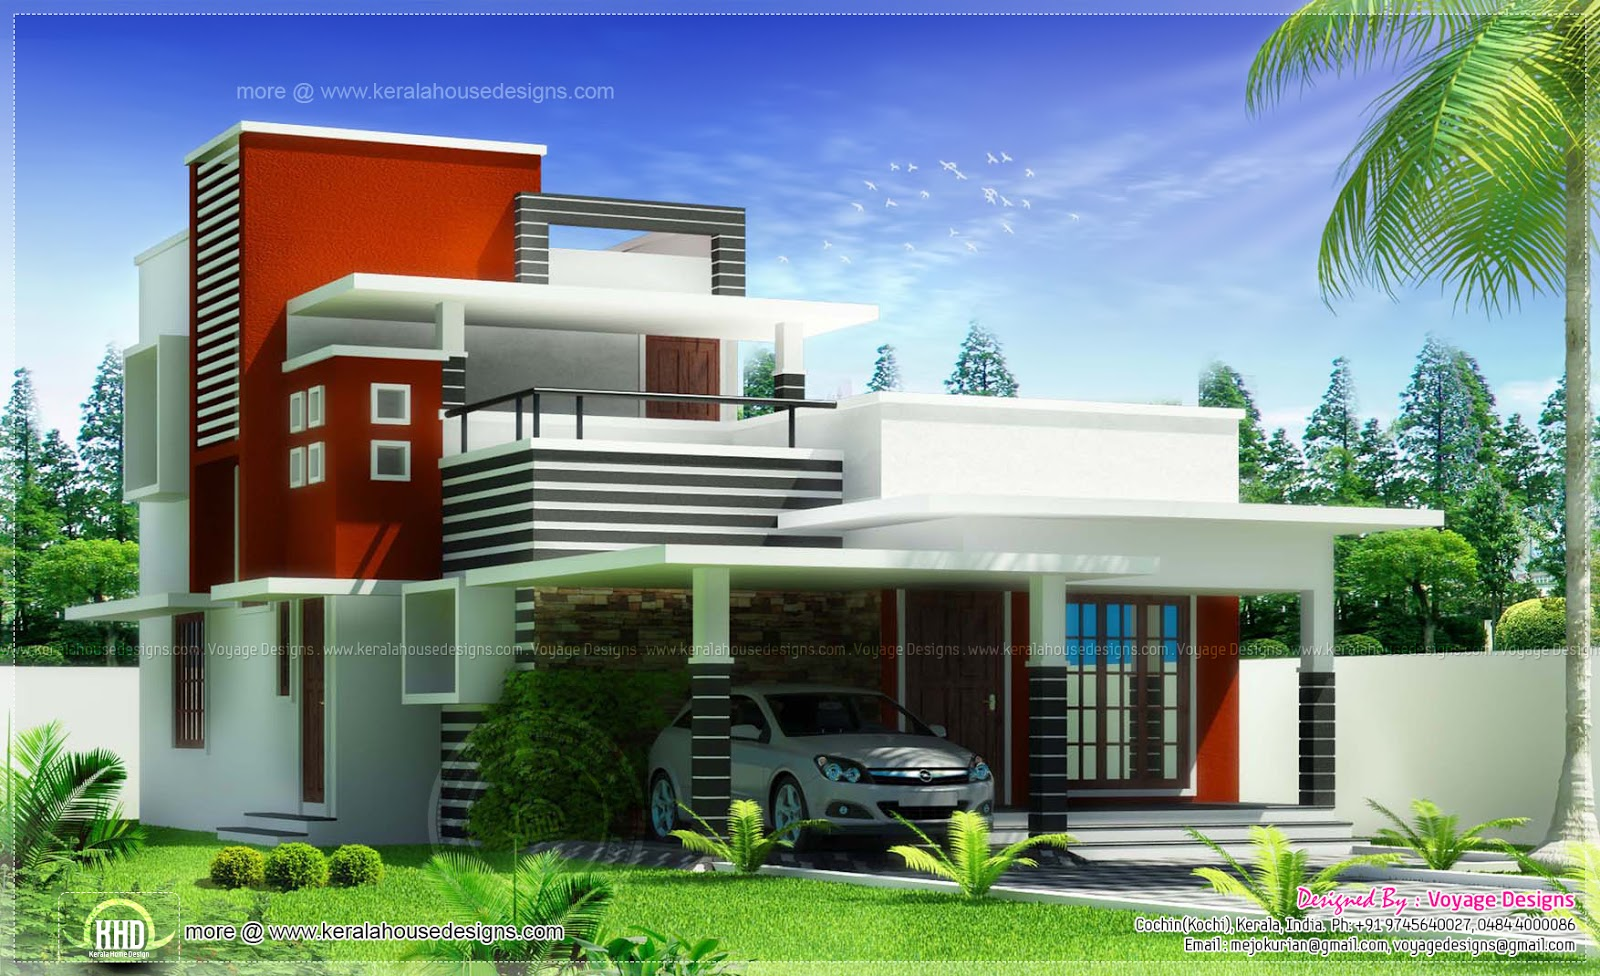 3 bed room contemporary style house kerala home design - Home design at sq ...